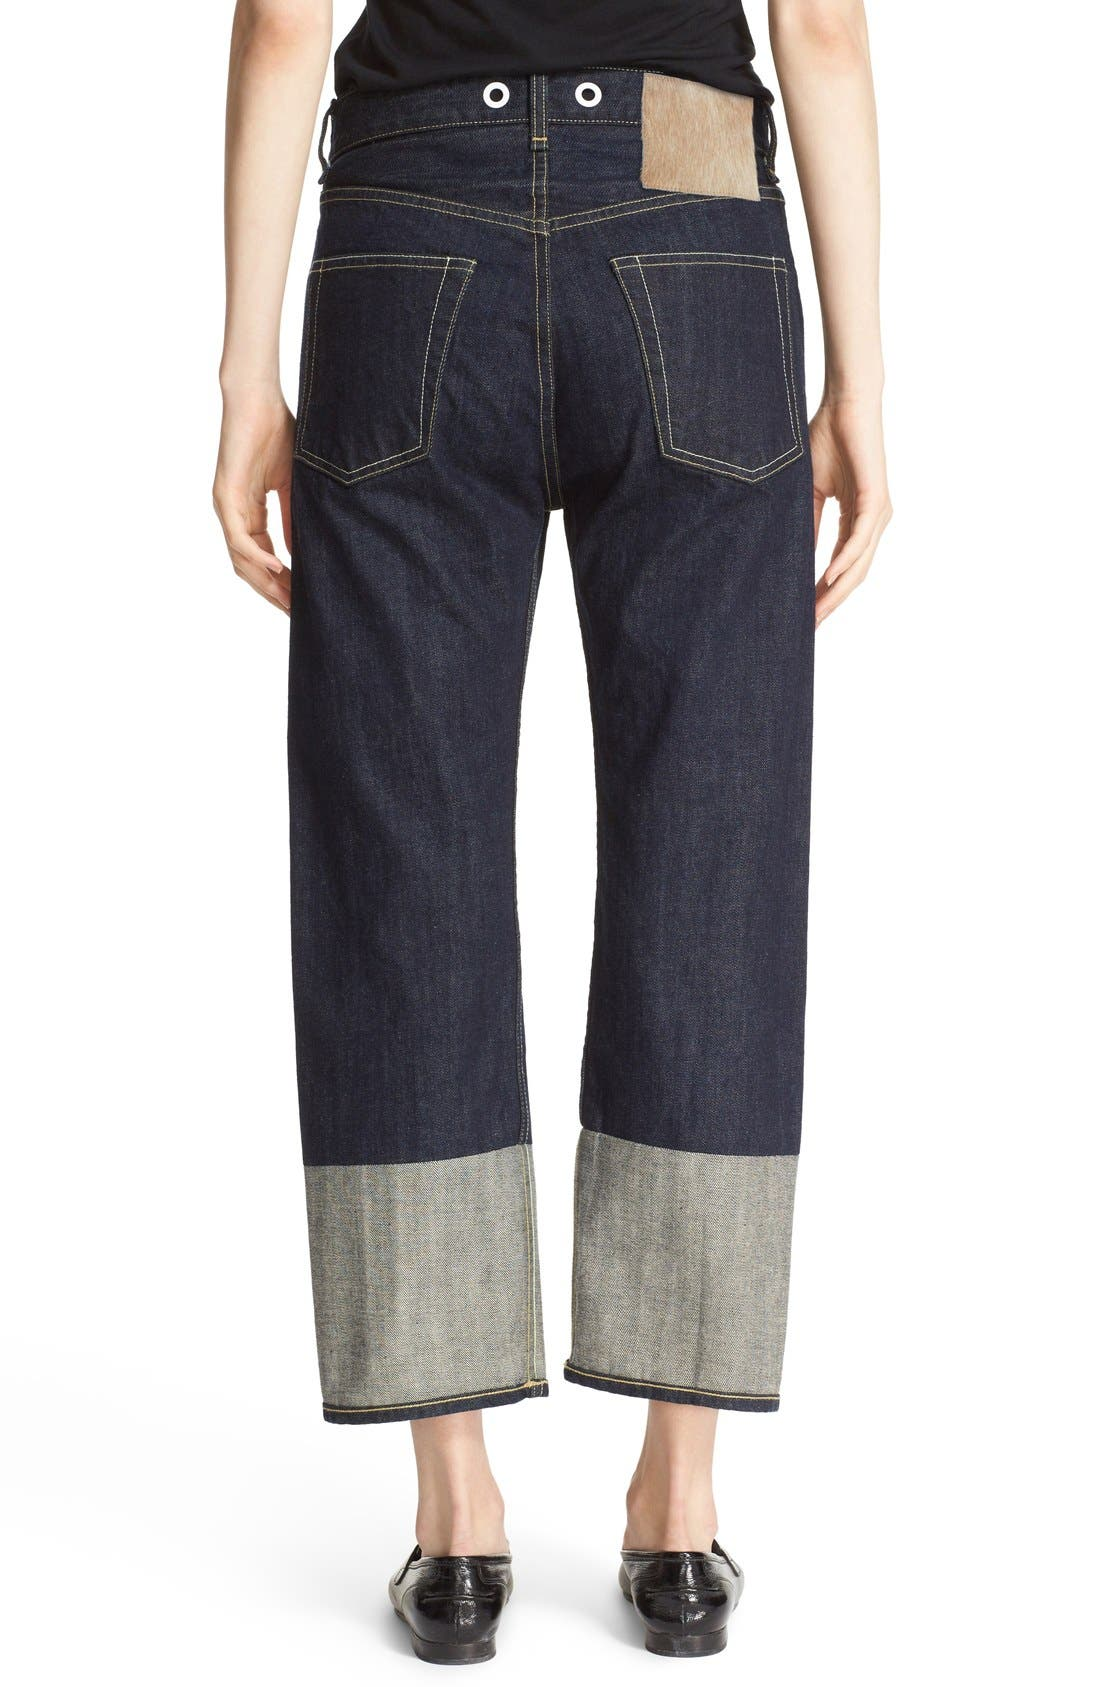 RBW16 High Rise Crop Jeans,                             Alternate thumbnail 2, color,                             470